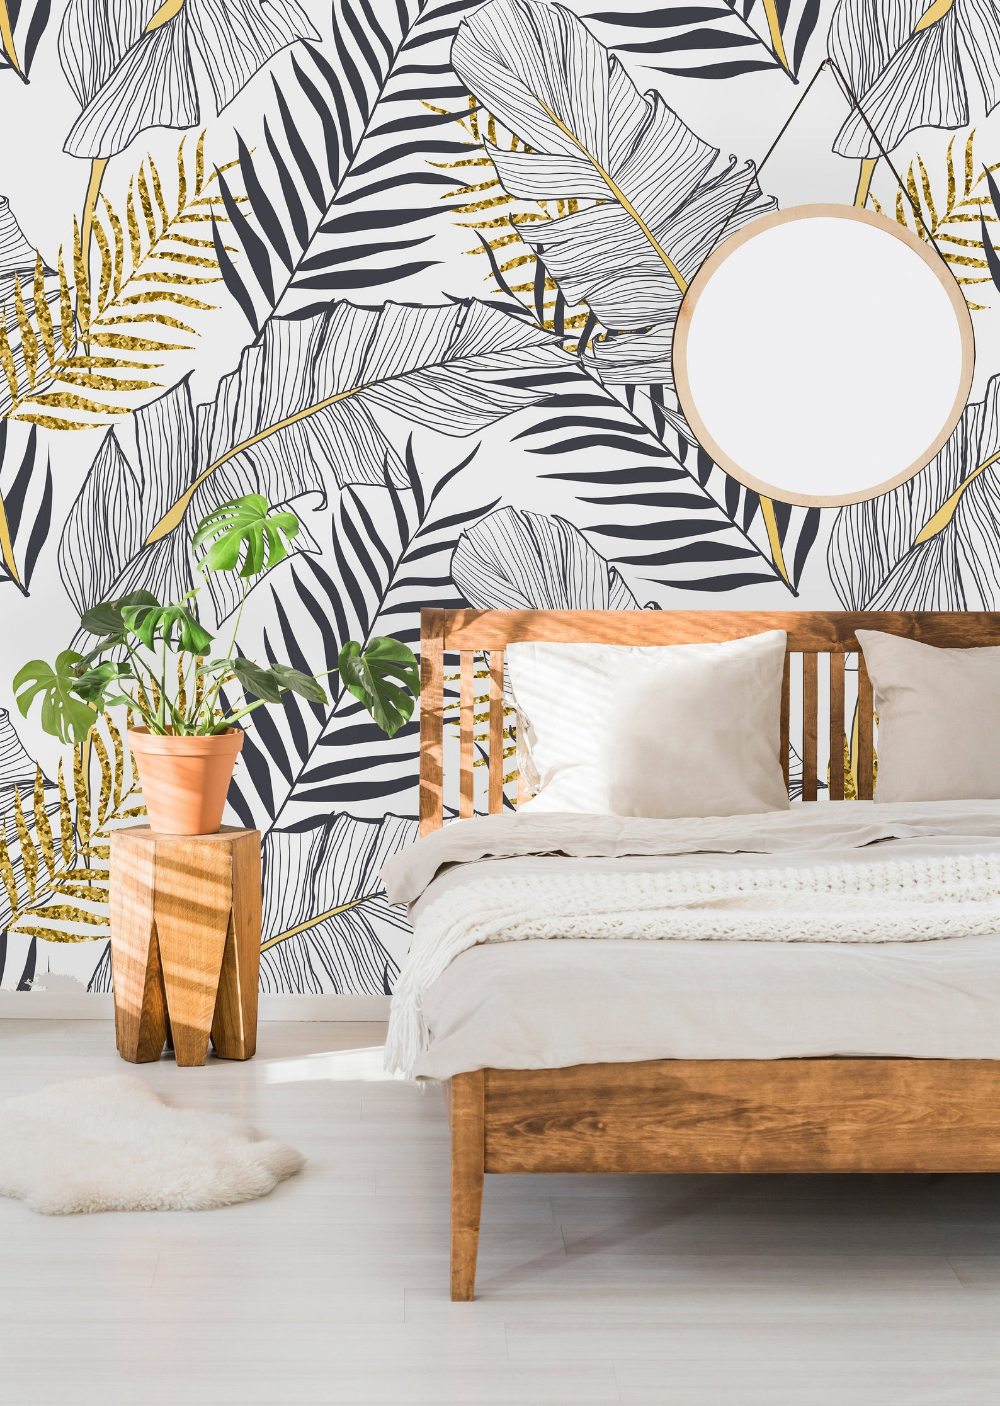 Removable Wallpaper Peel And Stick Wallpaper Self Adhesive Etsy Removable Wallpaper Tropical Bedroom Decor Peel And Stick Wallpaper